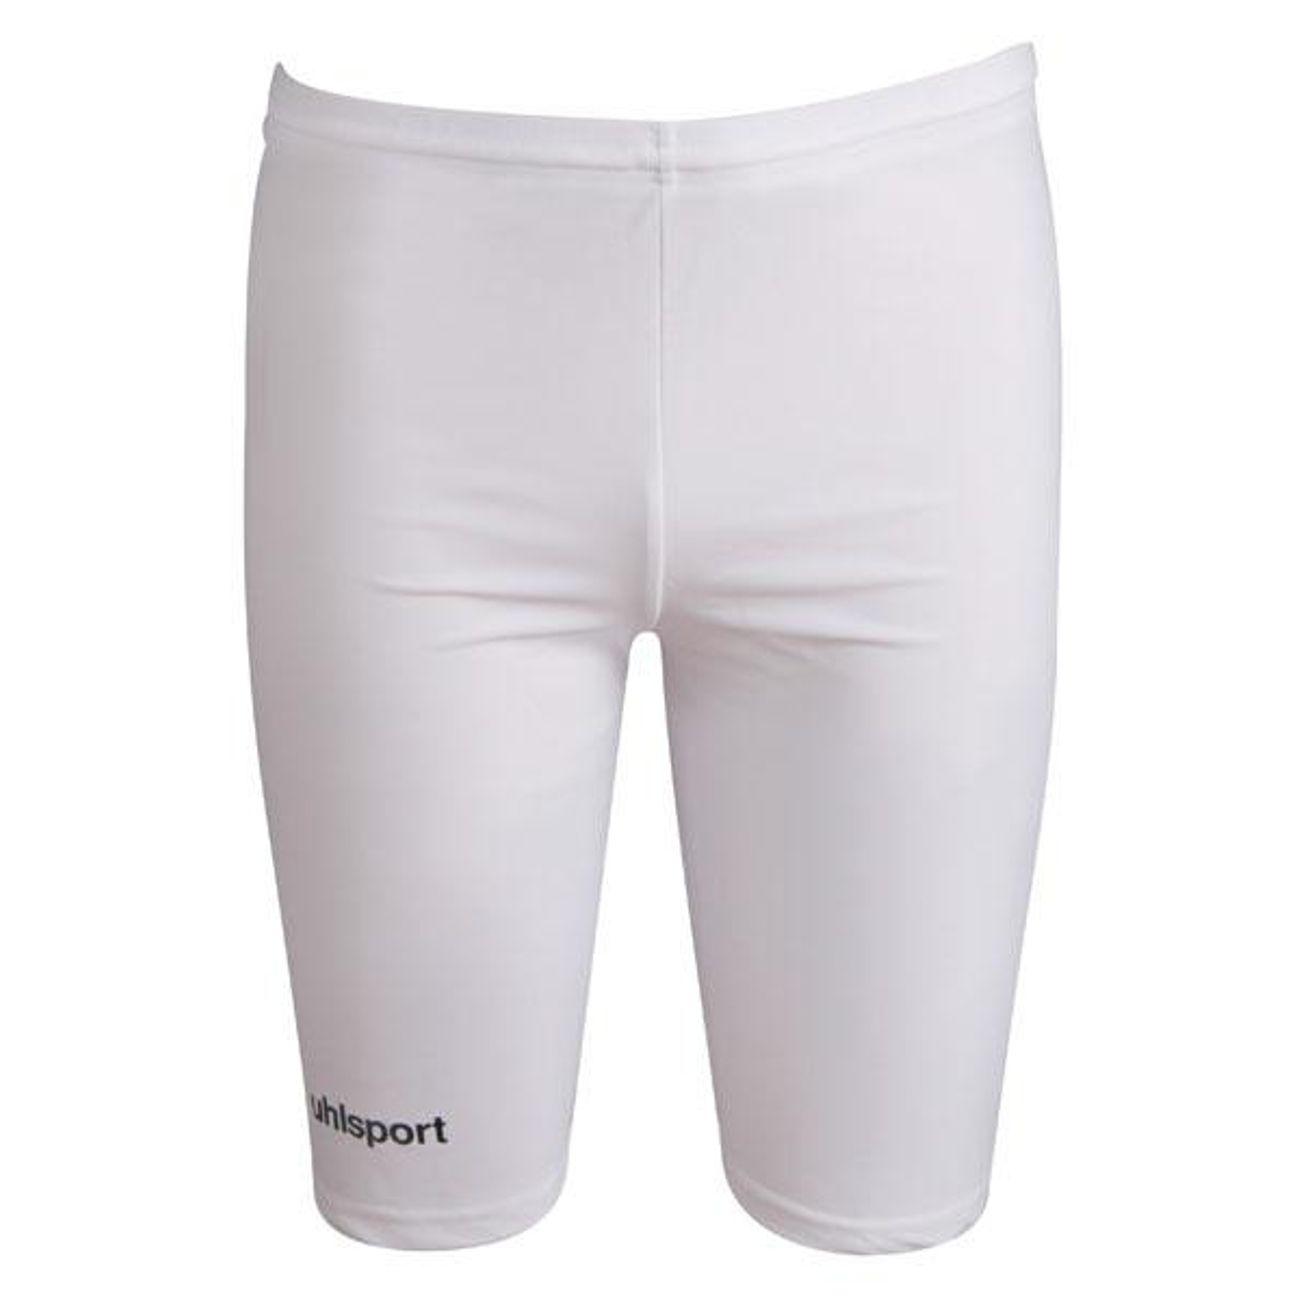 Football Shorts Tight Homme Uhlsport Uhlsport Homme Football Tight zVSMUp